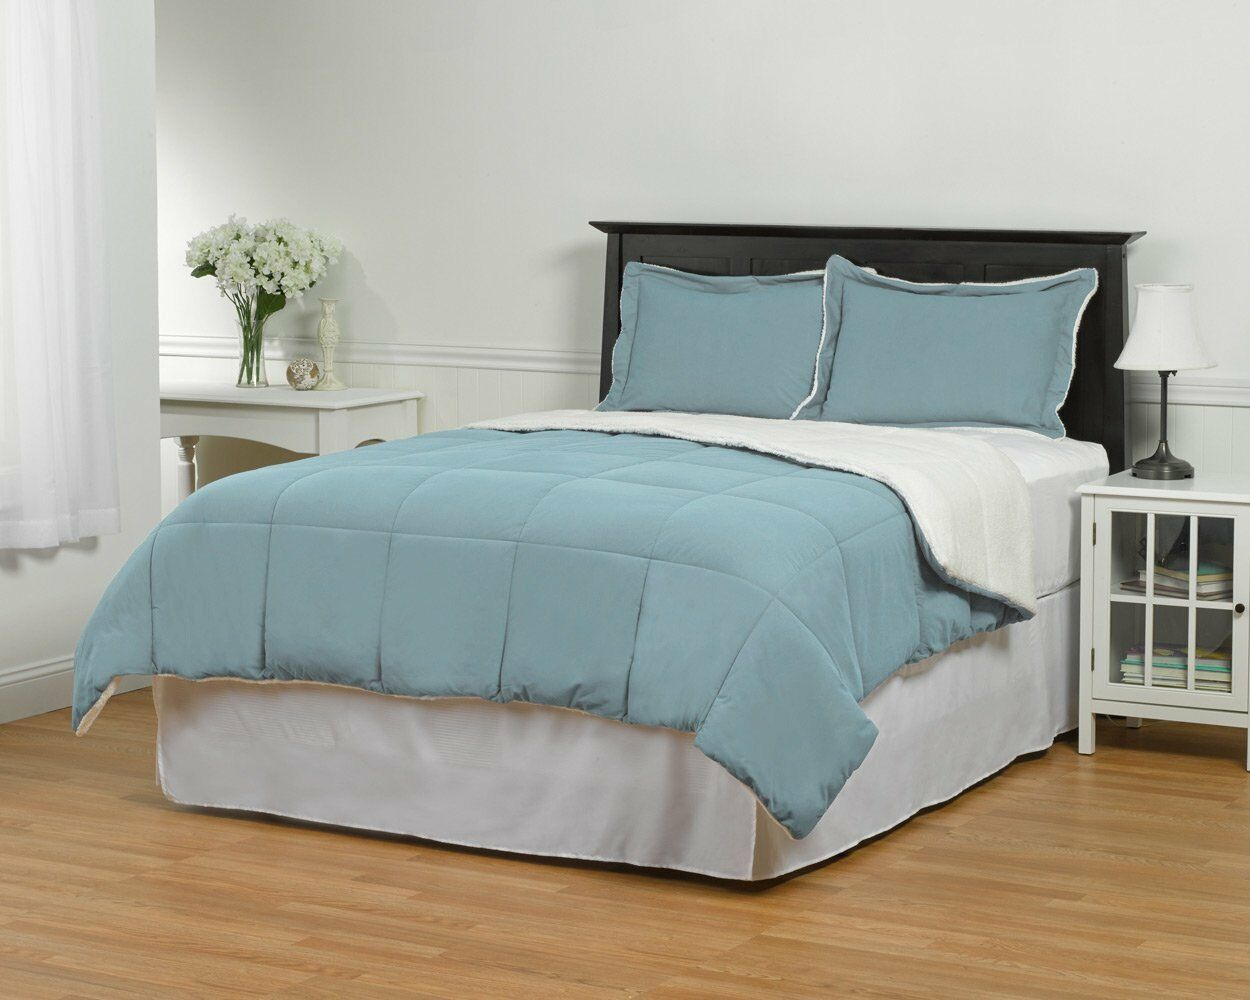 Sherpa Down Alternative Comforter Set light bluee (C1)